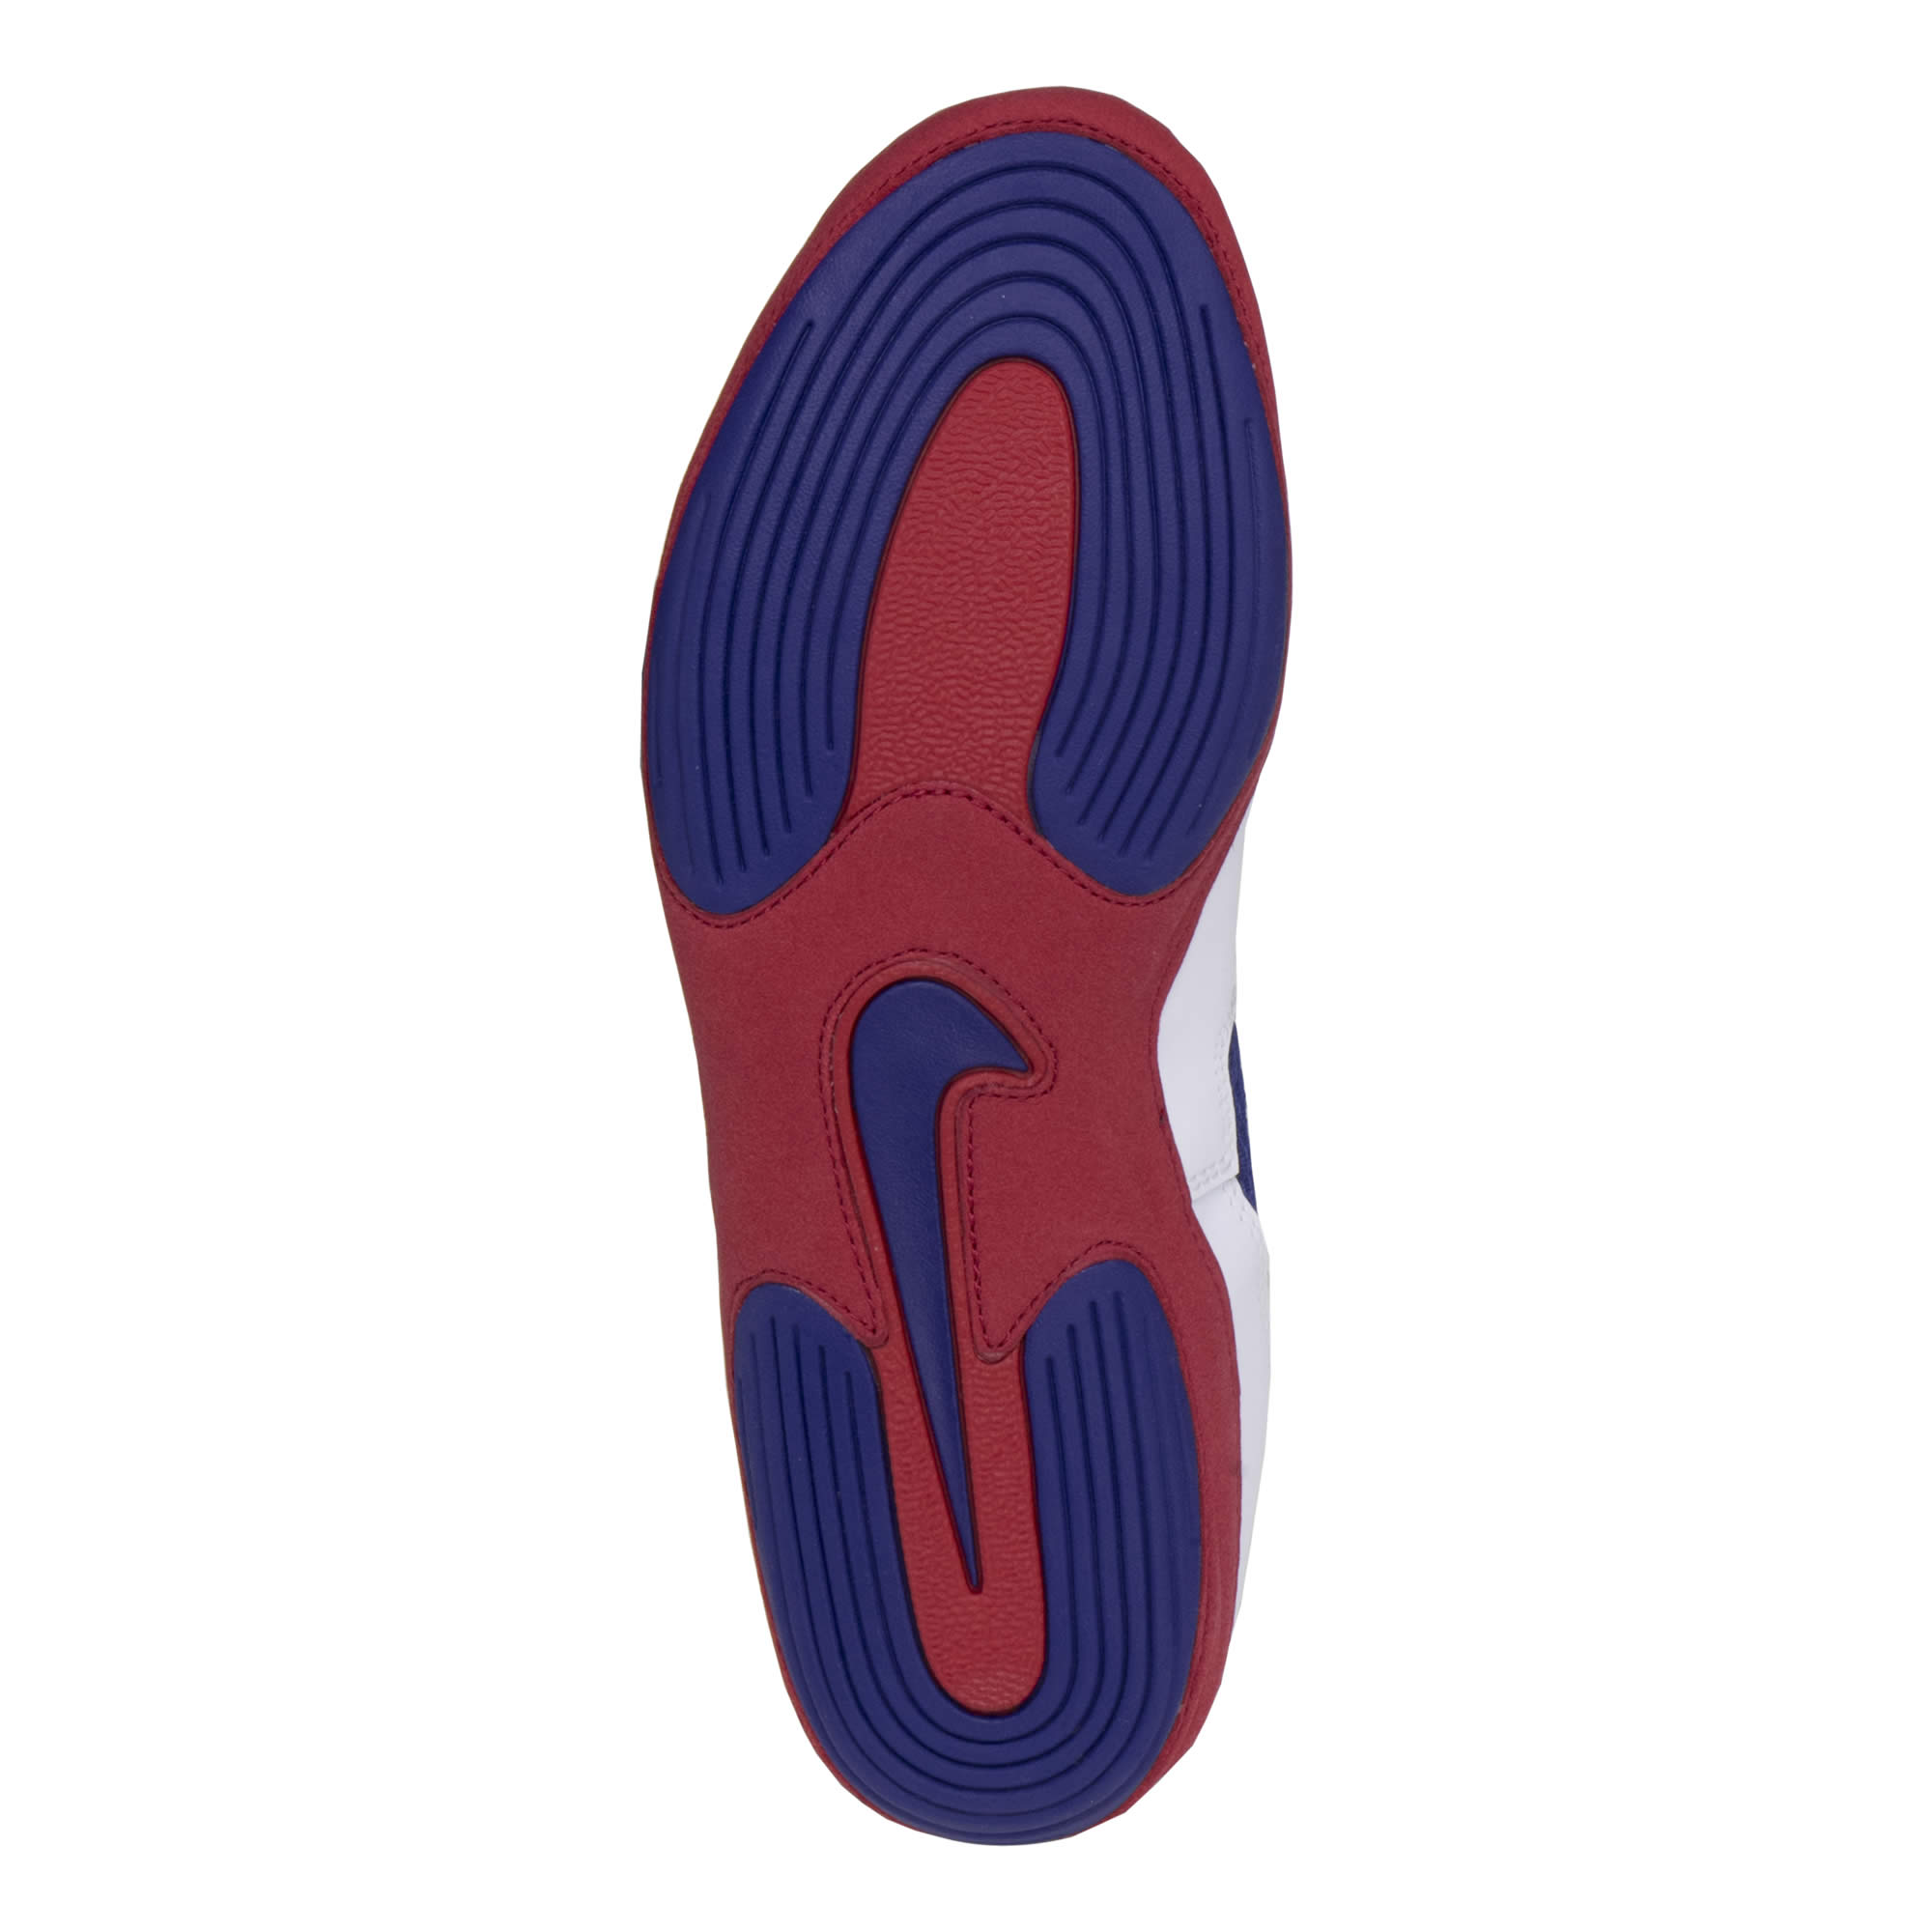 free shipping a624f 49d15 Nike Inflict 3 Royal Blue Red White outsideNike Inflict 3 Royal Blue Red  White insideNike Inflict 3 Royal Blue Red White frontNike Inflict 3 Royal  Blue Red ...